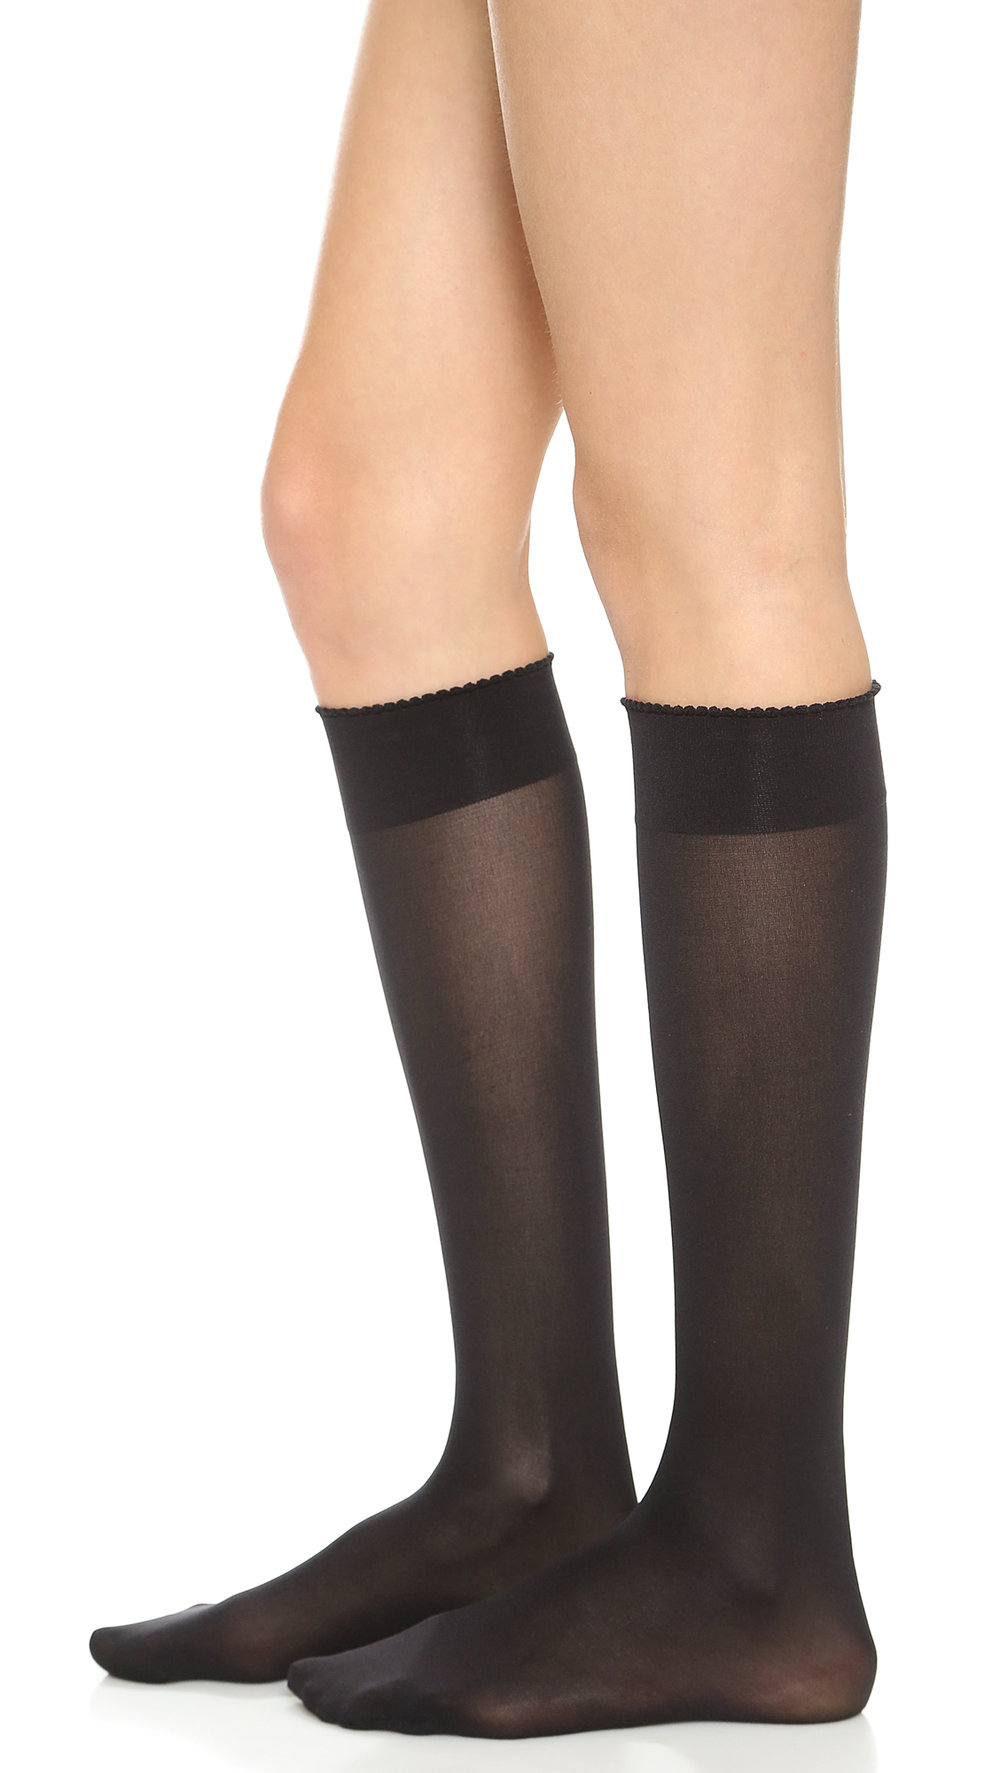 wolford black knee high socks